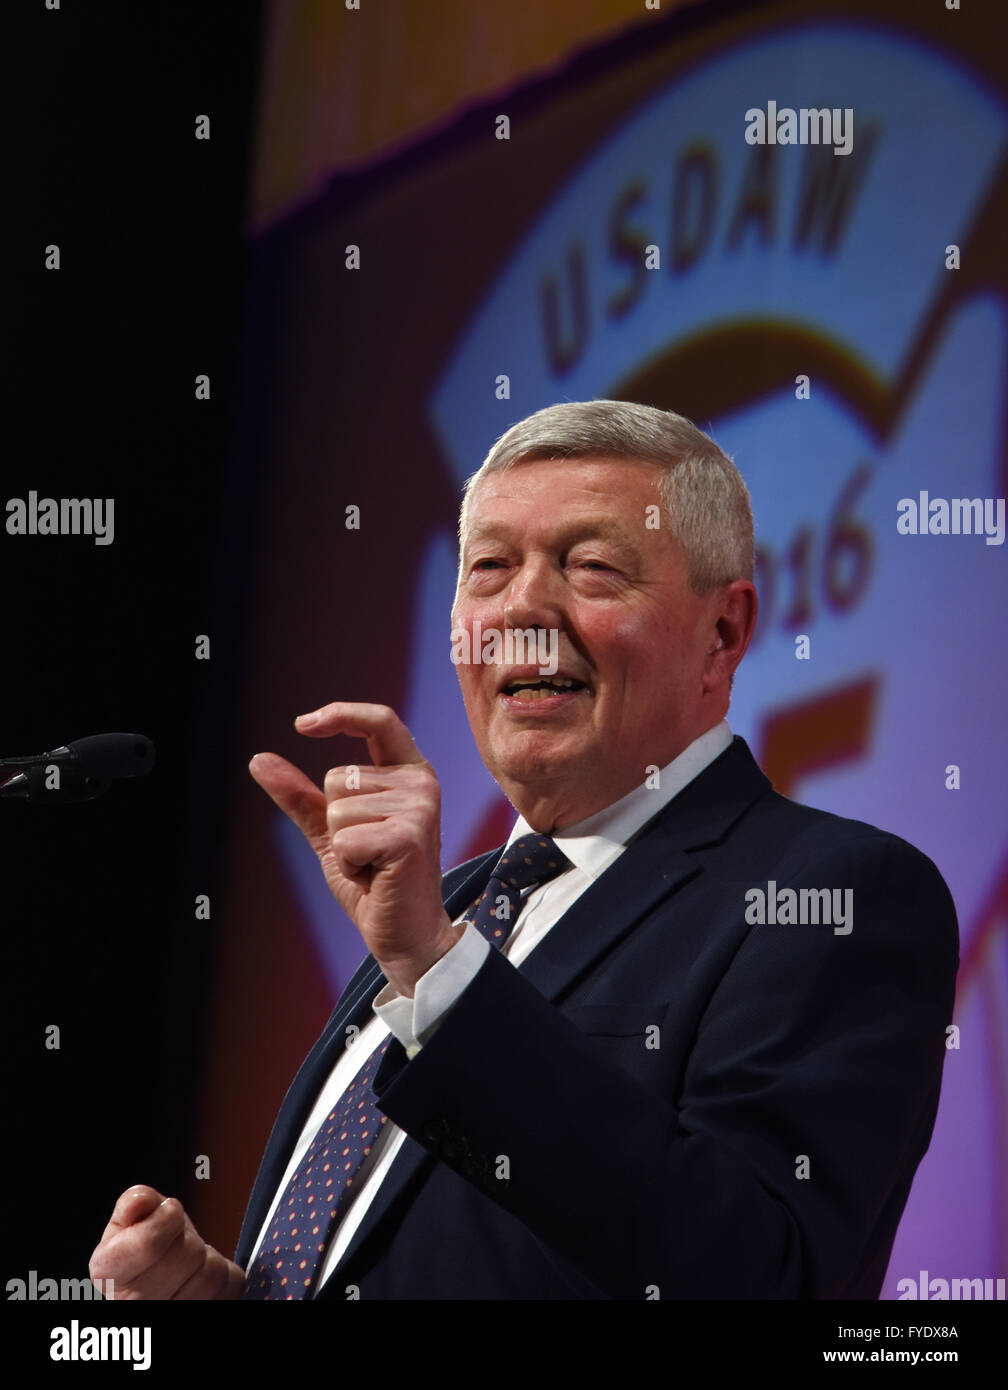 Blackpool, UK. 26th April, 2016. Alan Johnson MP Leader of the Labour In for Britain Campaign addresses the USDAW - Stock Image